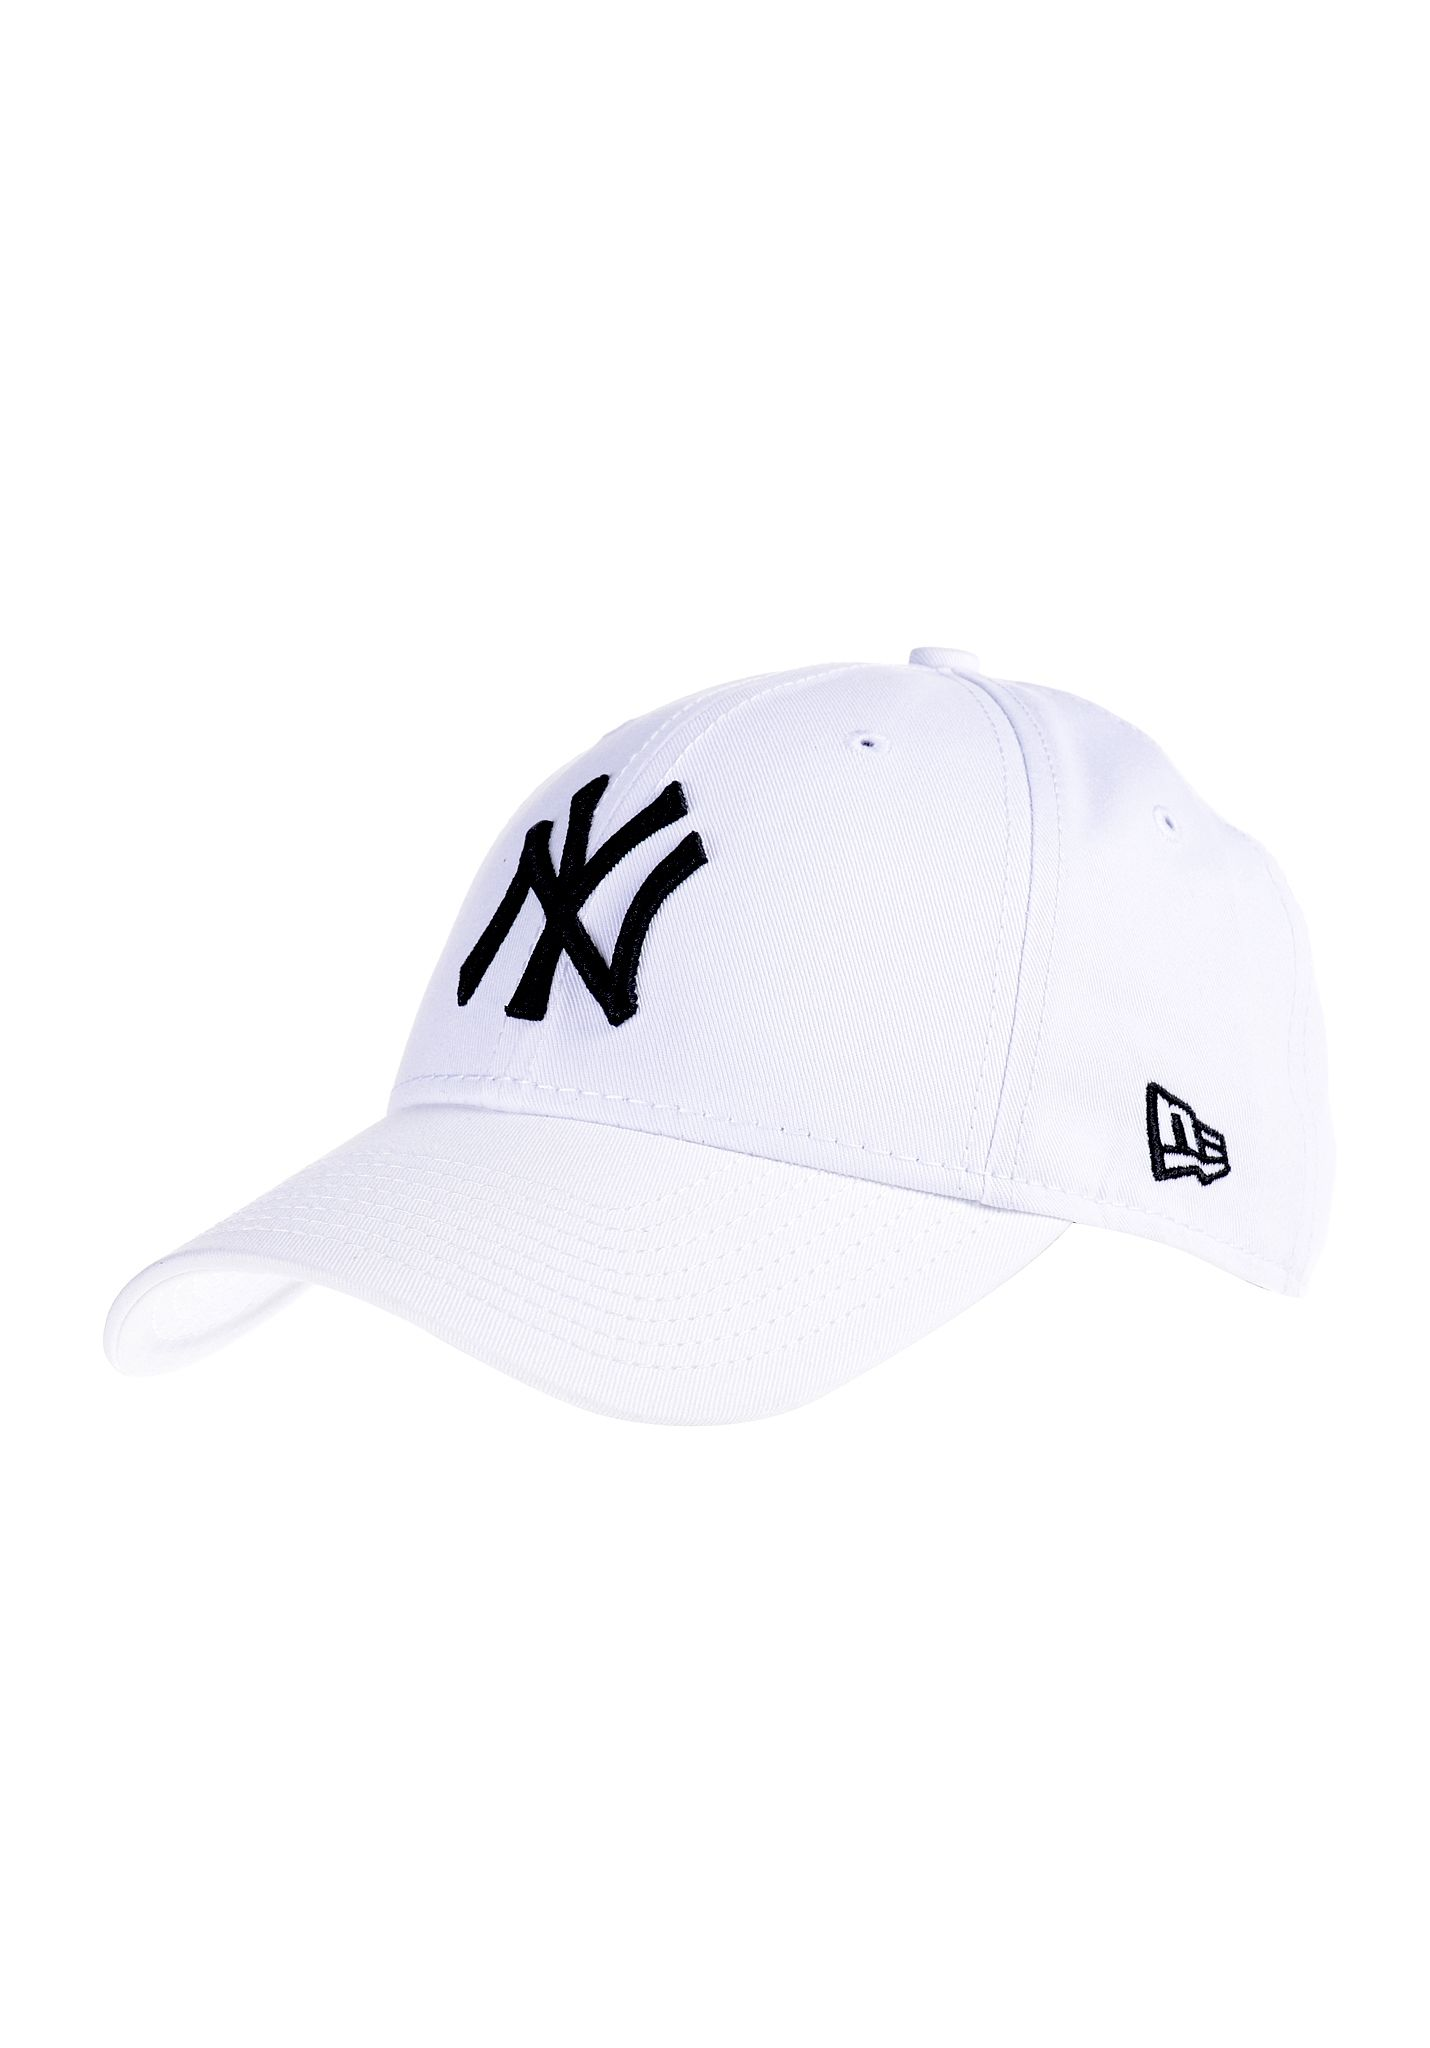 7d133d91b4f NEW Era 9Forty New York Yankees - Cap - White - Planet Sports